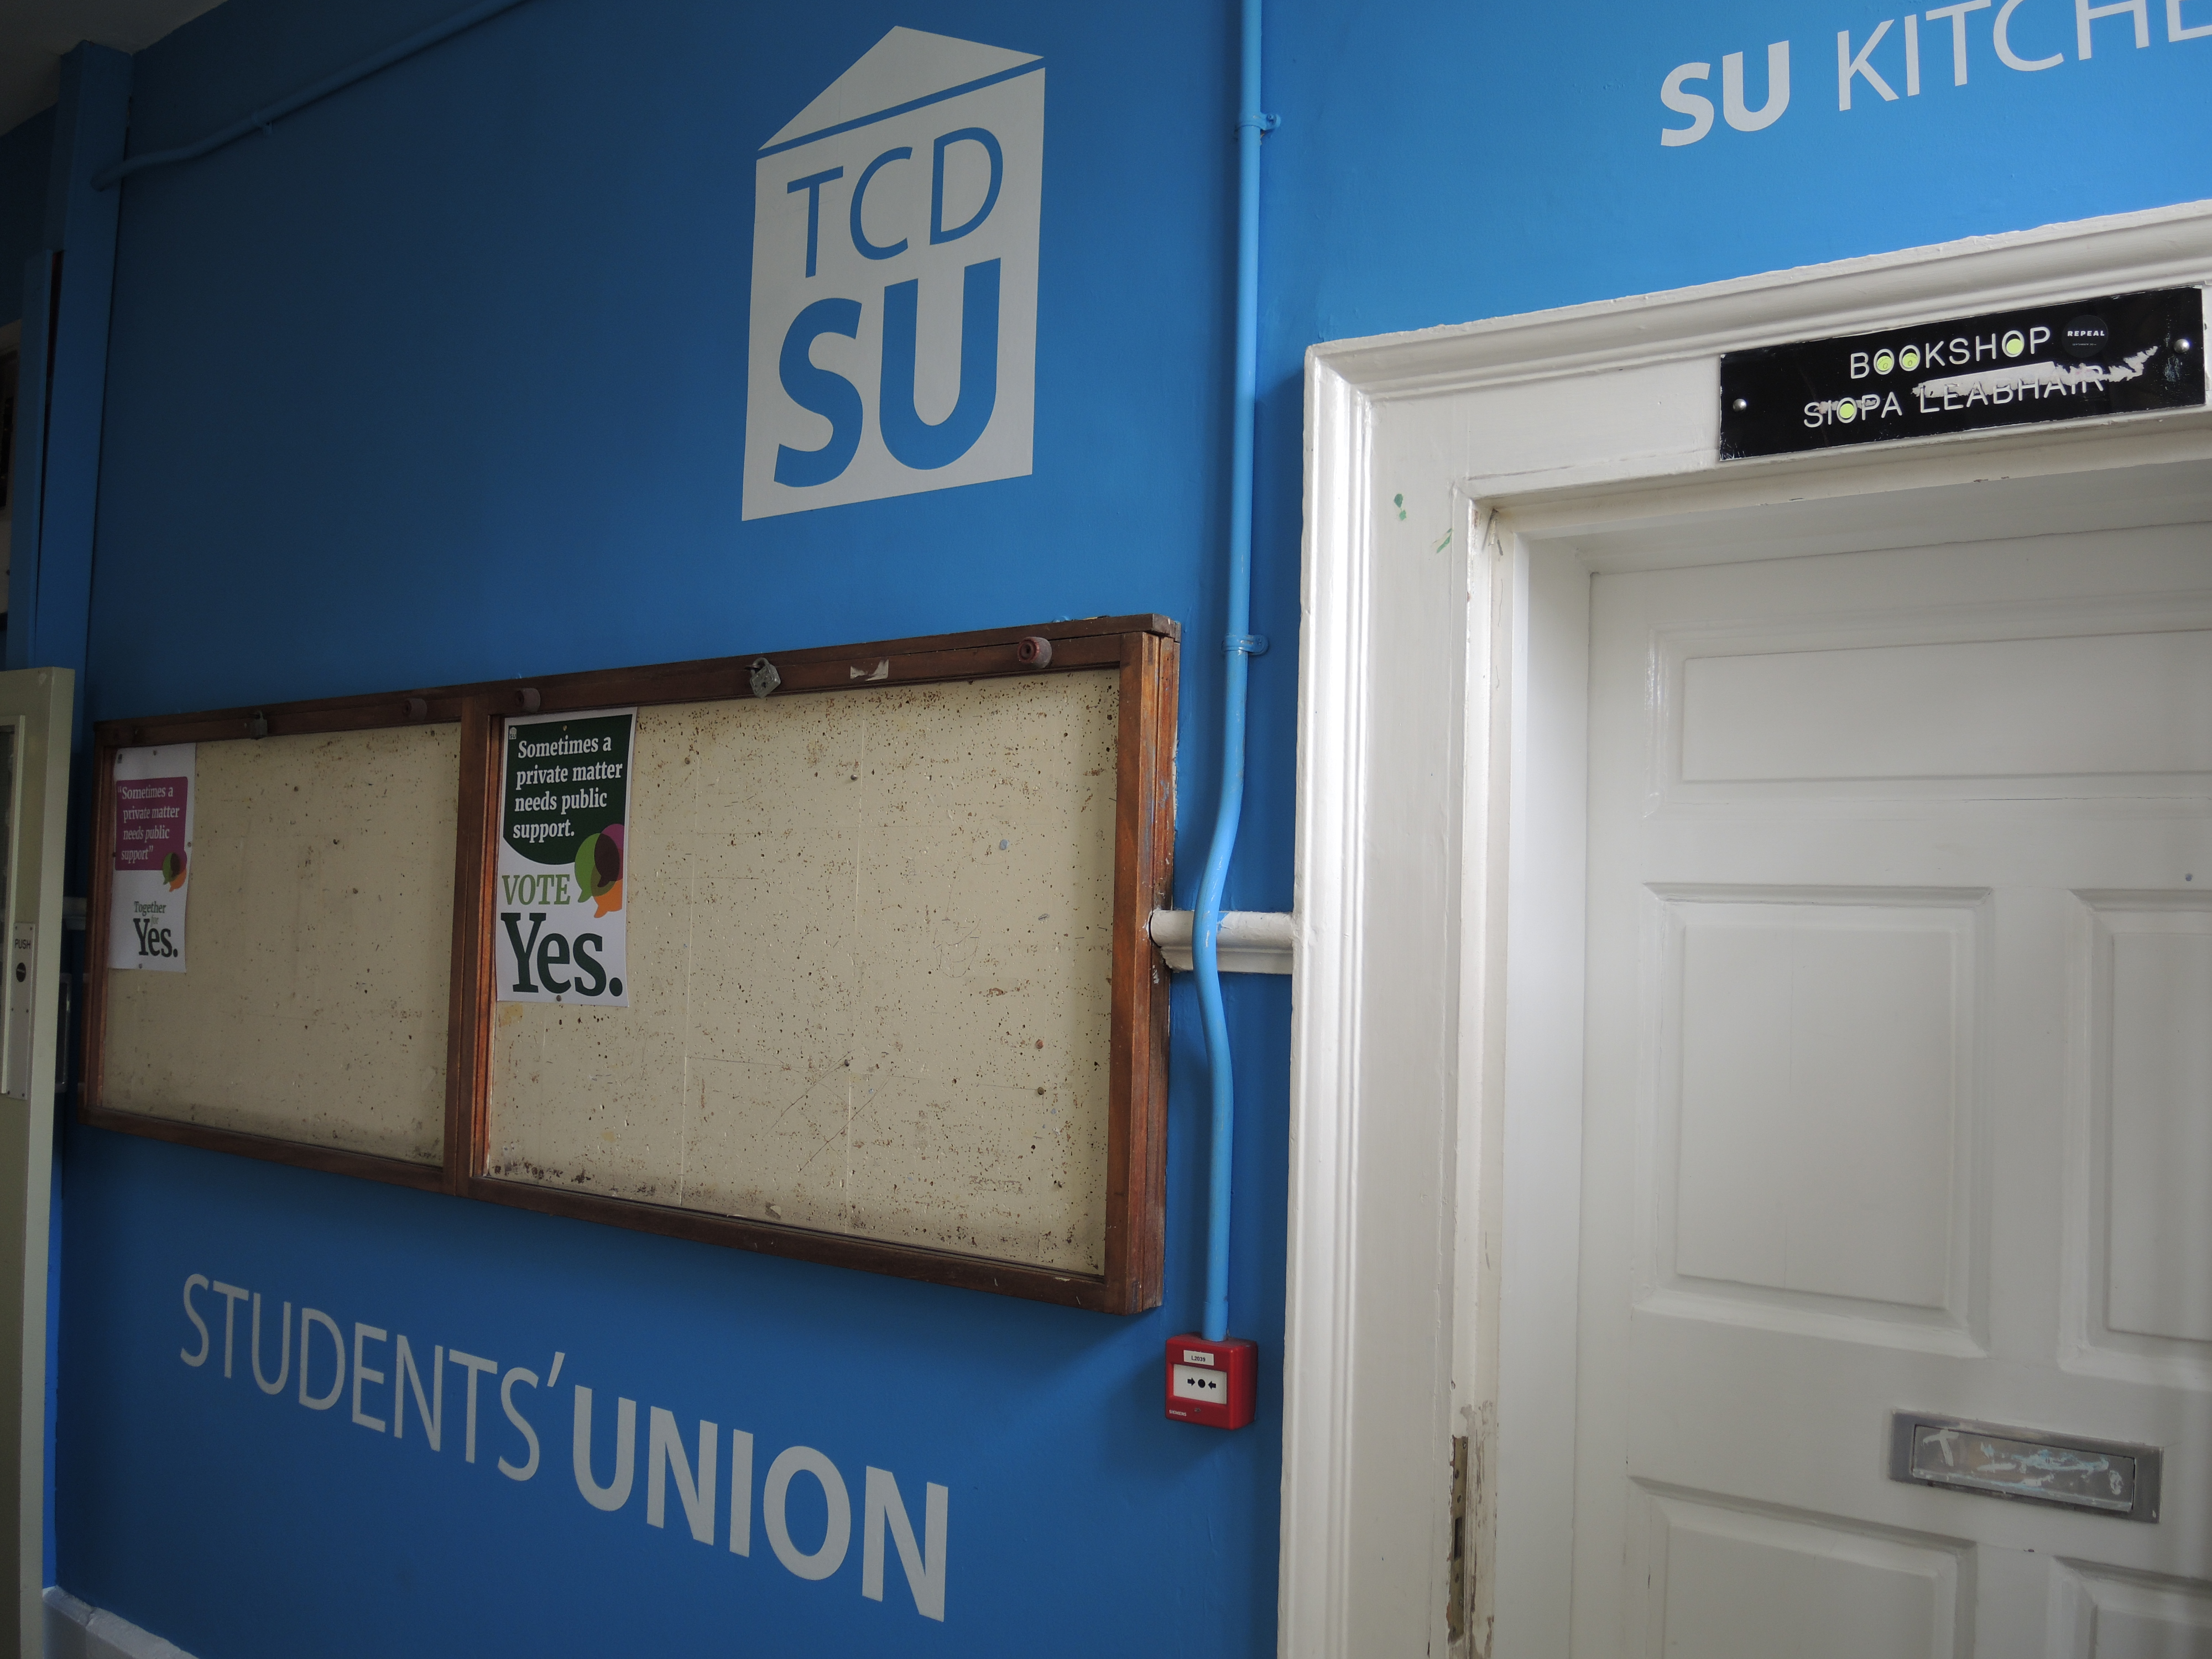 Students are fair in thinking that the SU no longer represents them